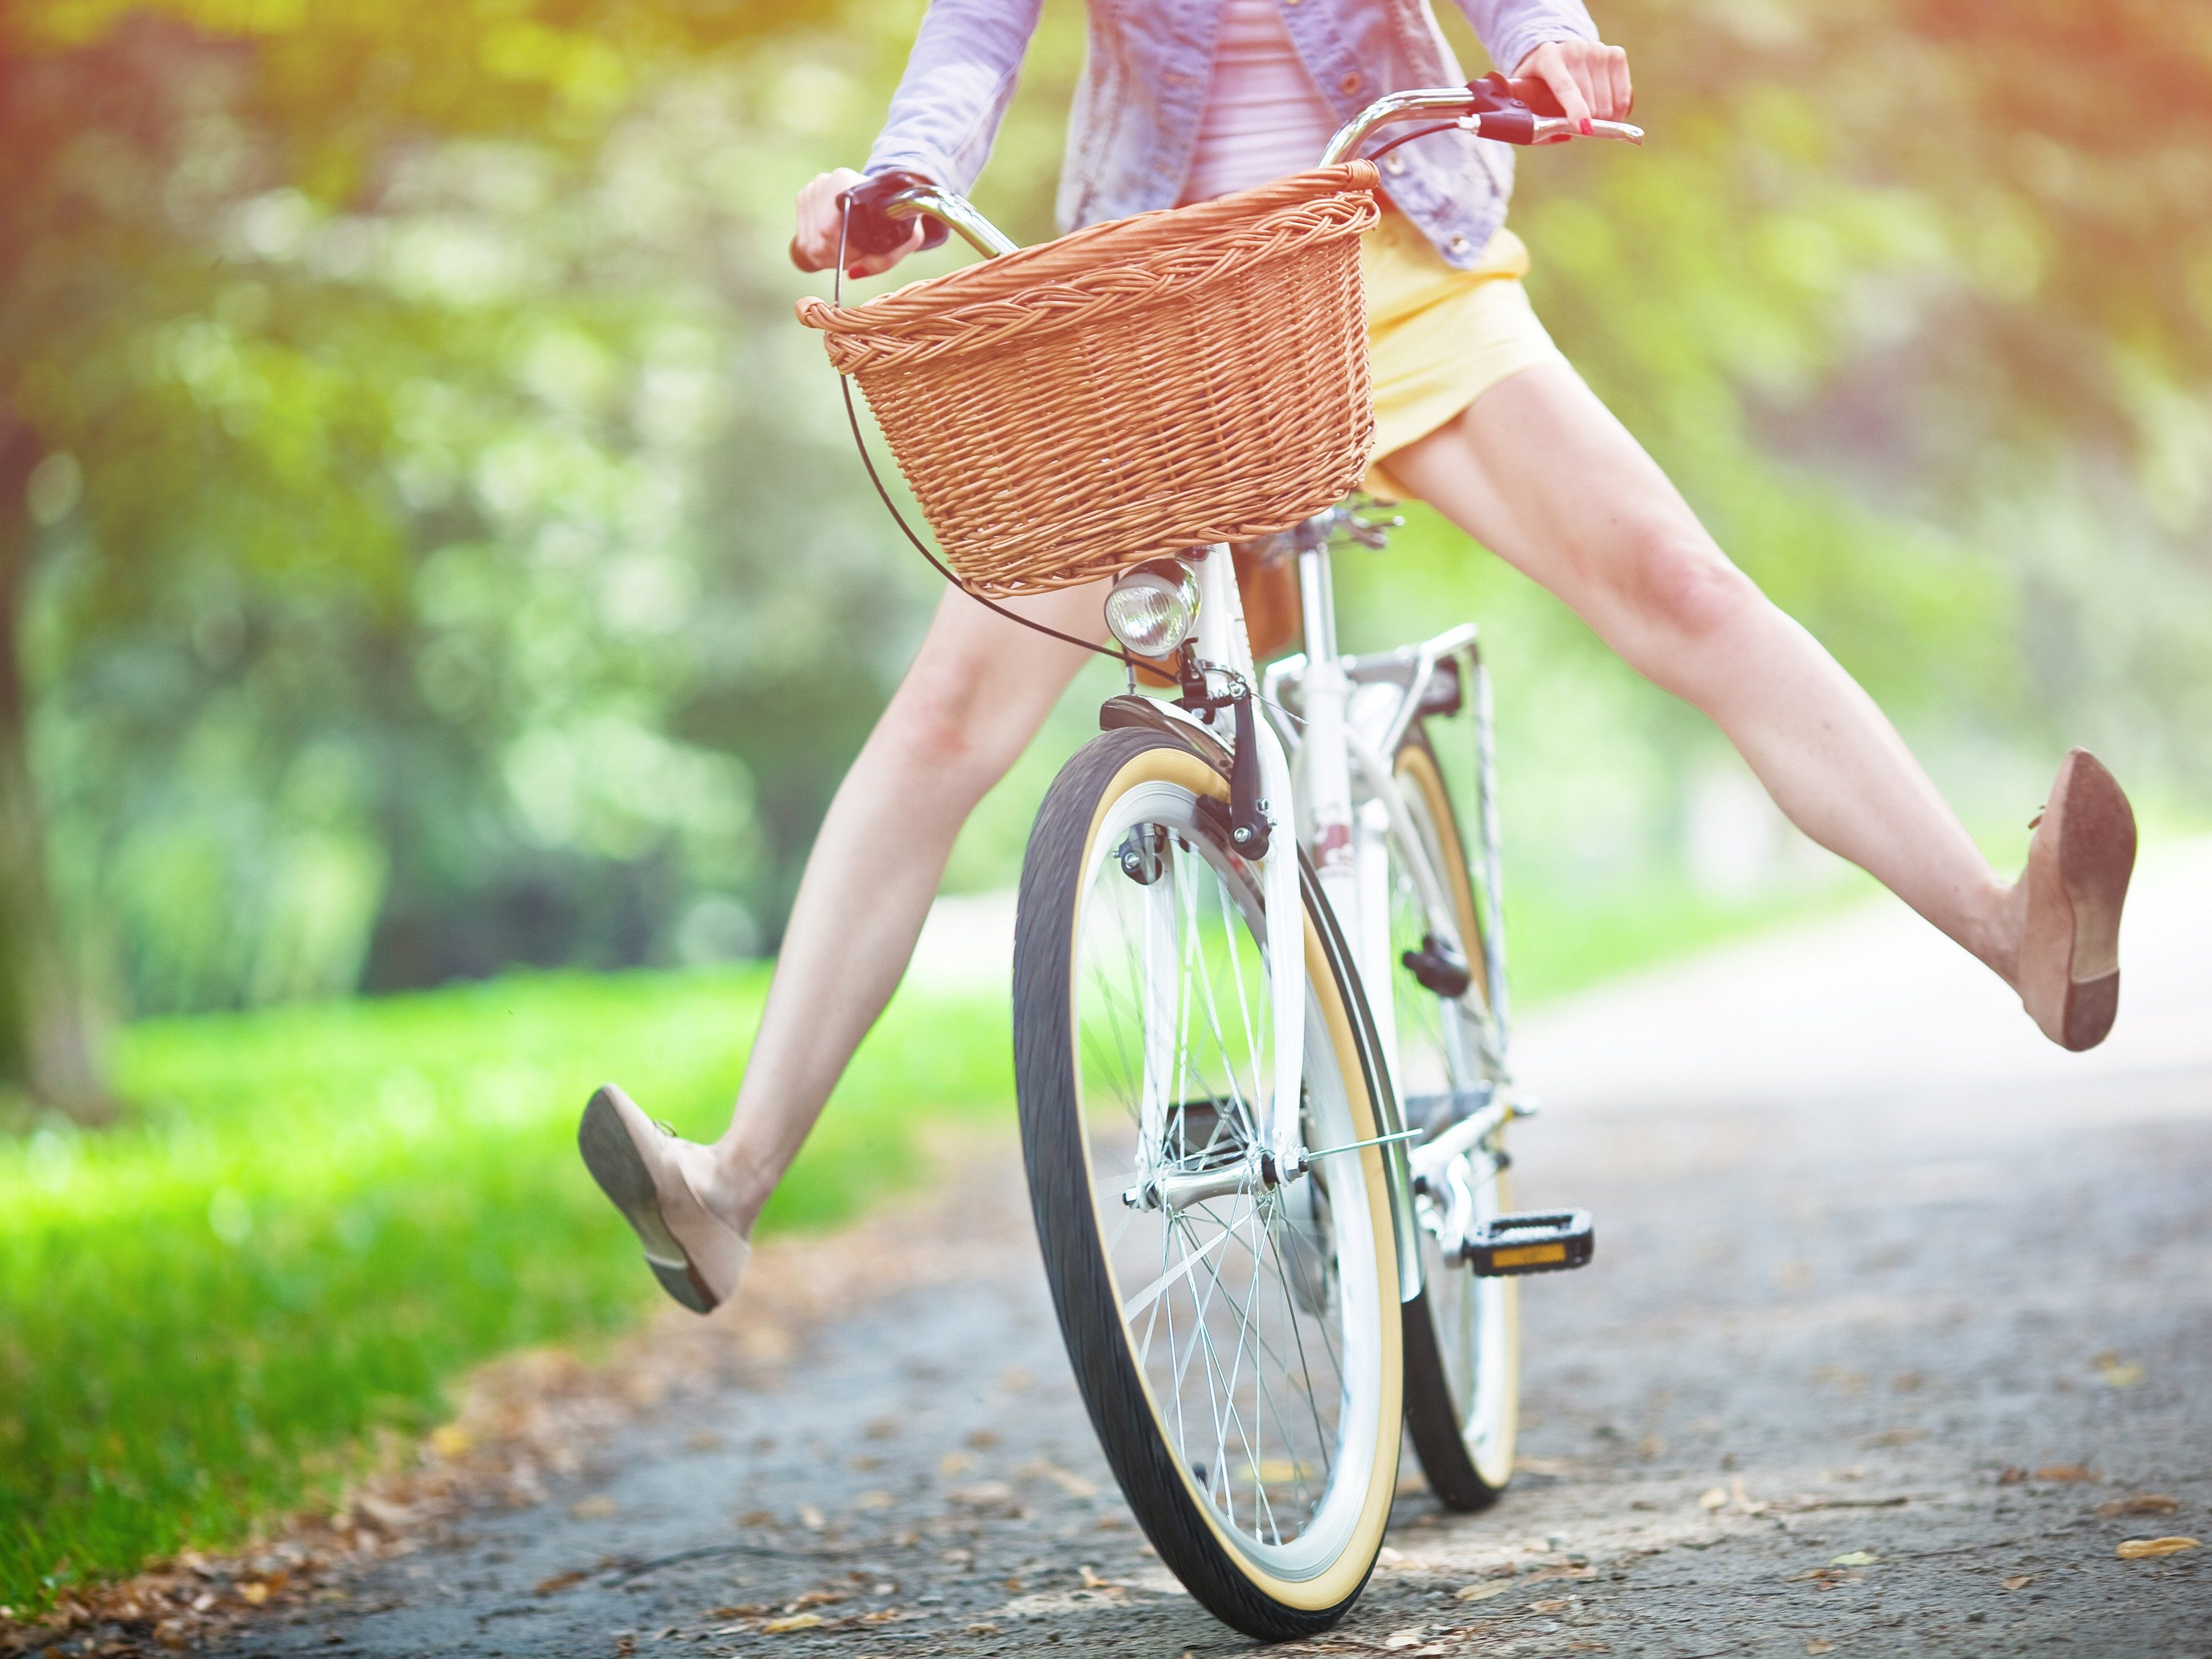 9. Cycling can be a powerful stress reliever.